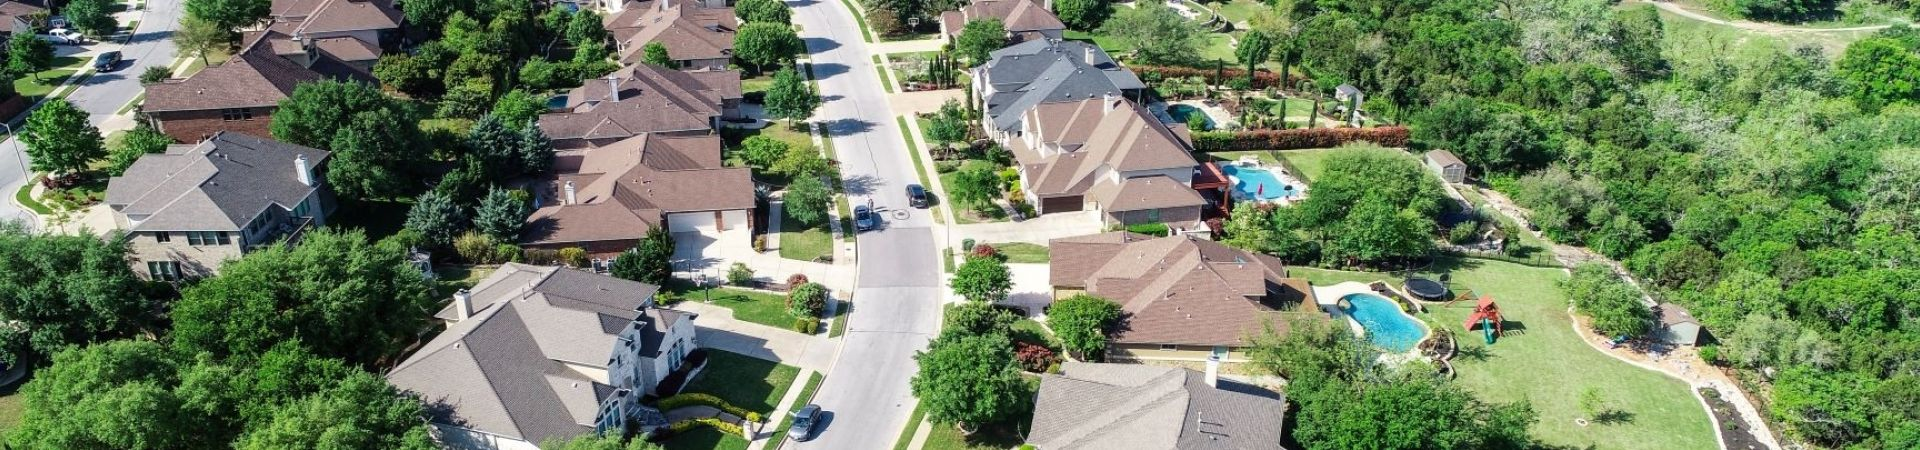 3.aerial view neighborhood